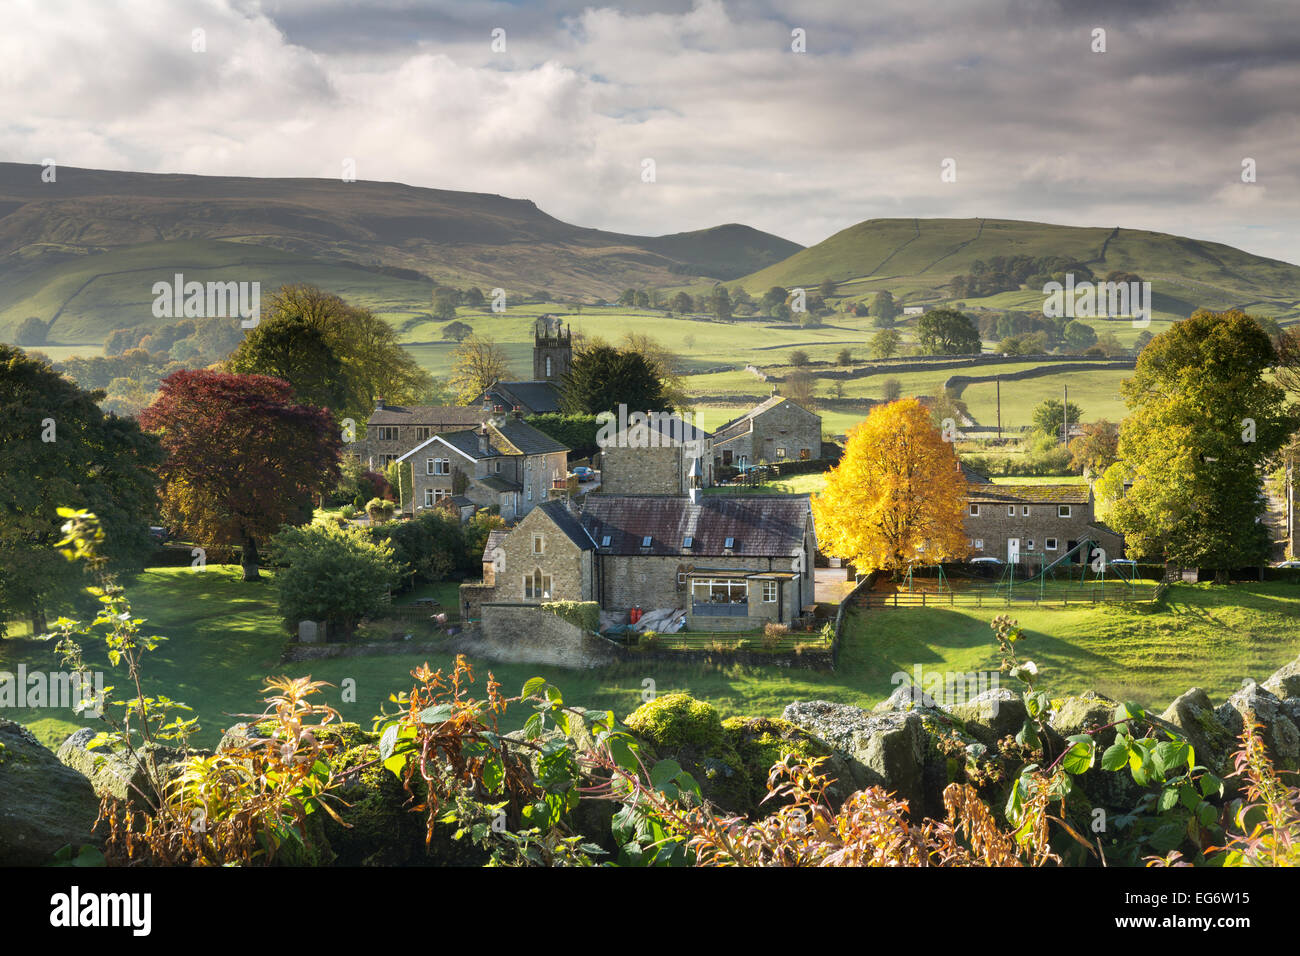 Hebden village Wharfdale in The Yorkshire Dales, England. - Stock Image